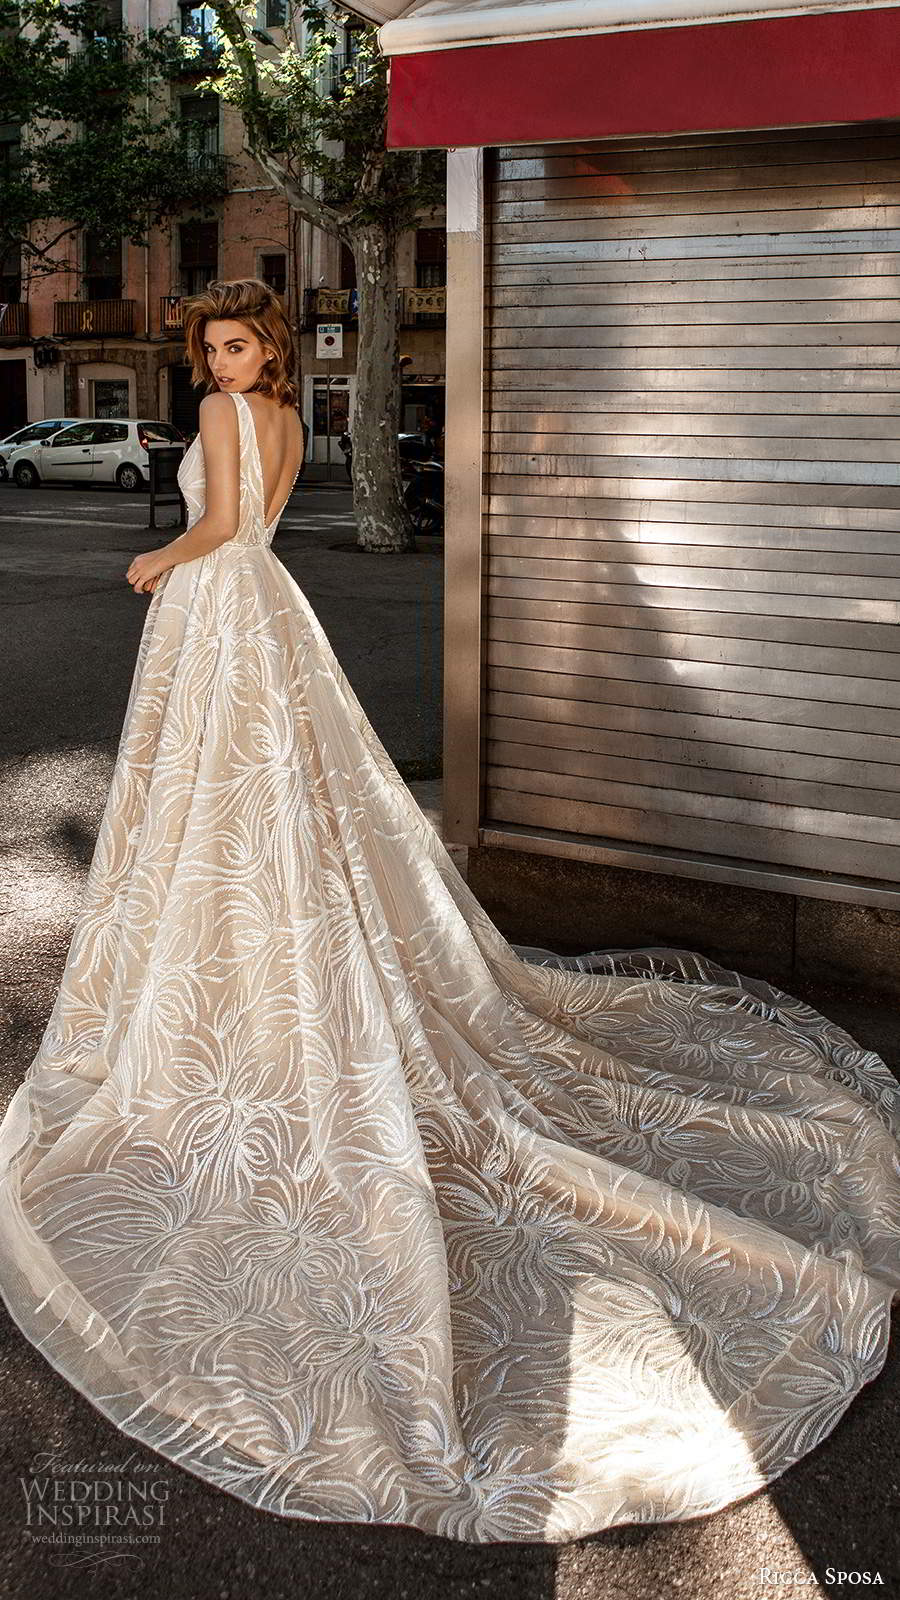 ricca sposa 2020 barcelona bridal sleeveless illusion thick straps plunging v neckline fully embellished glitzy glam a line ball gown wedding dress v back cathedral train (5) bv